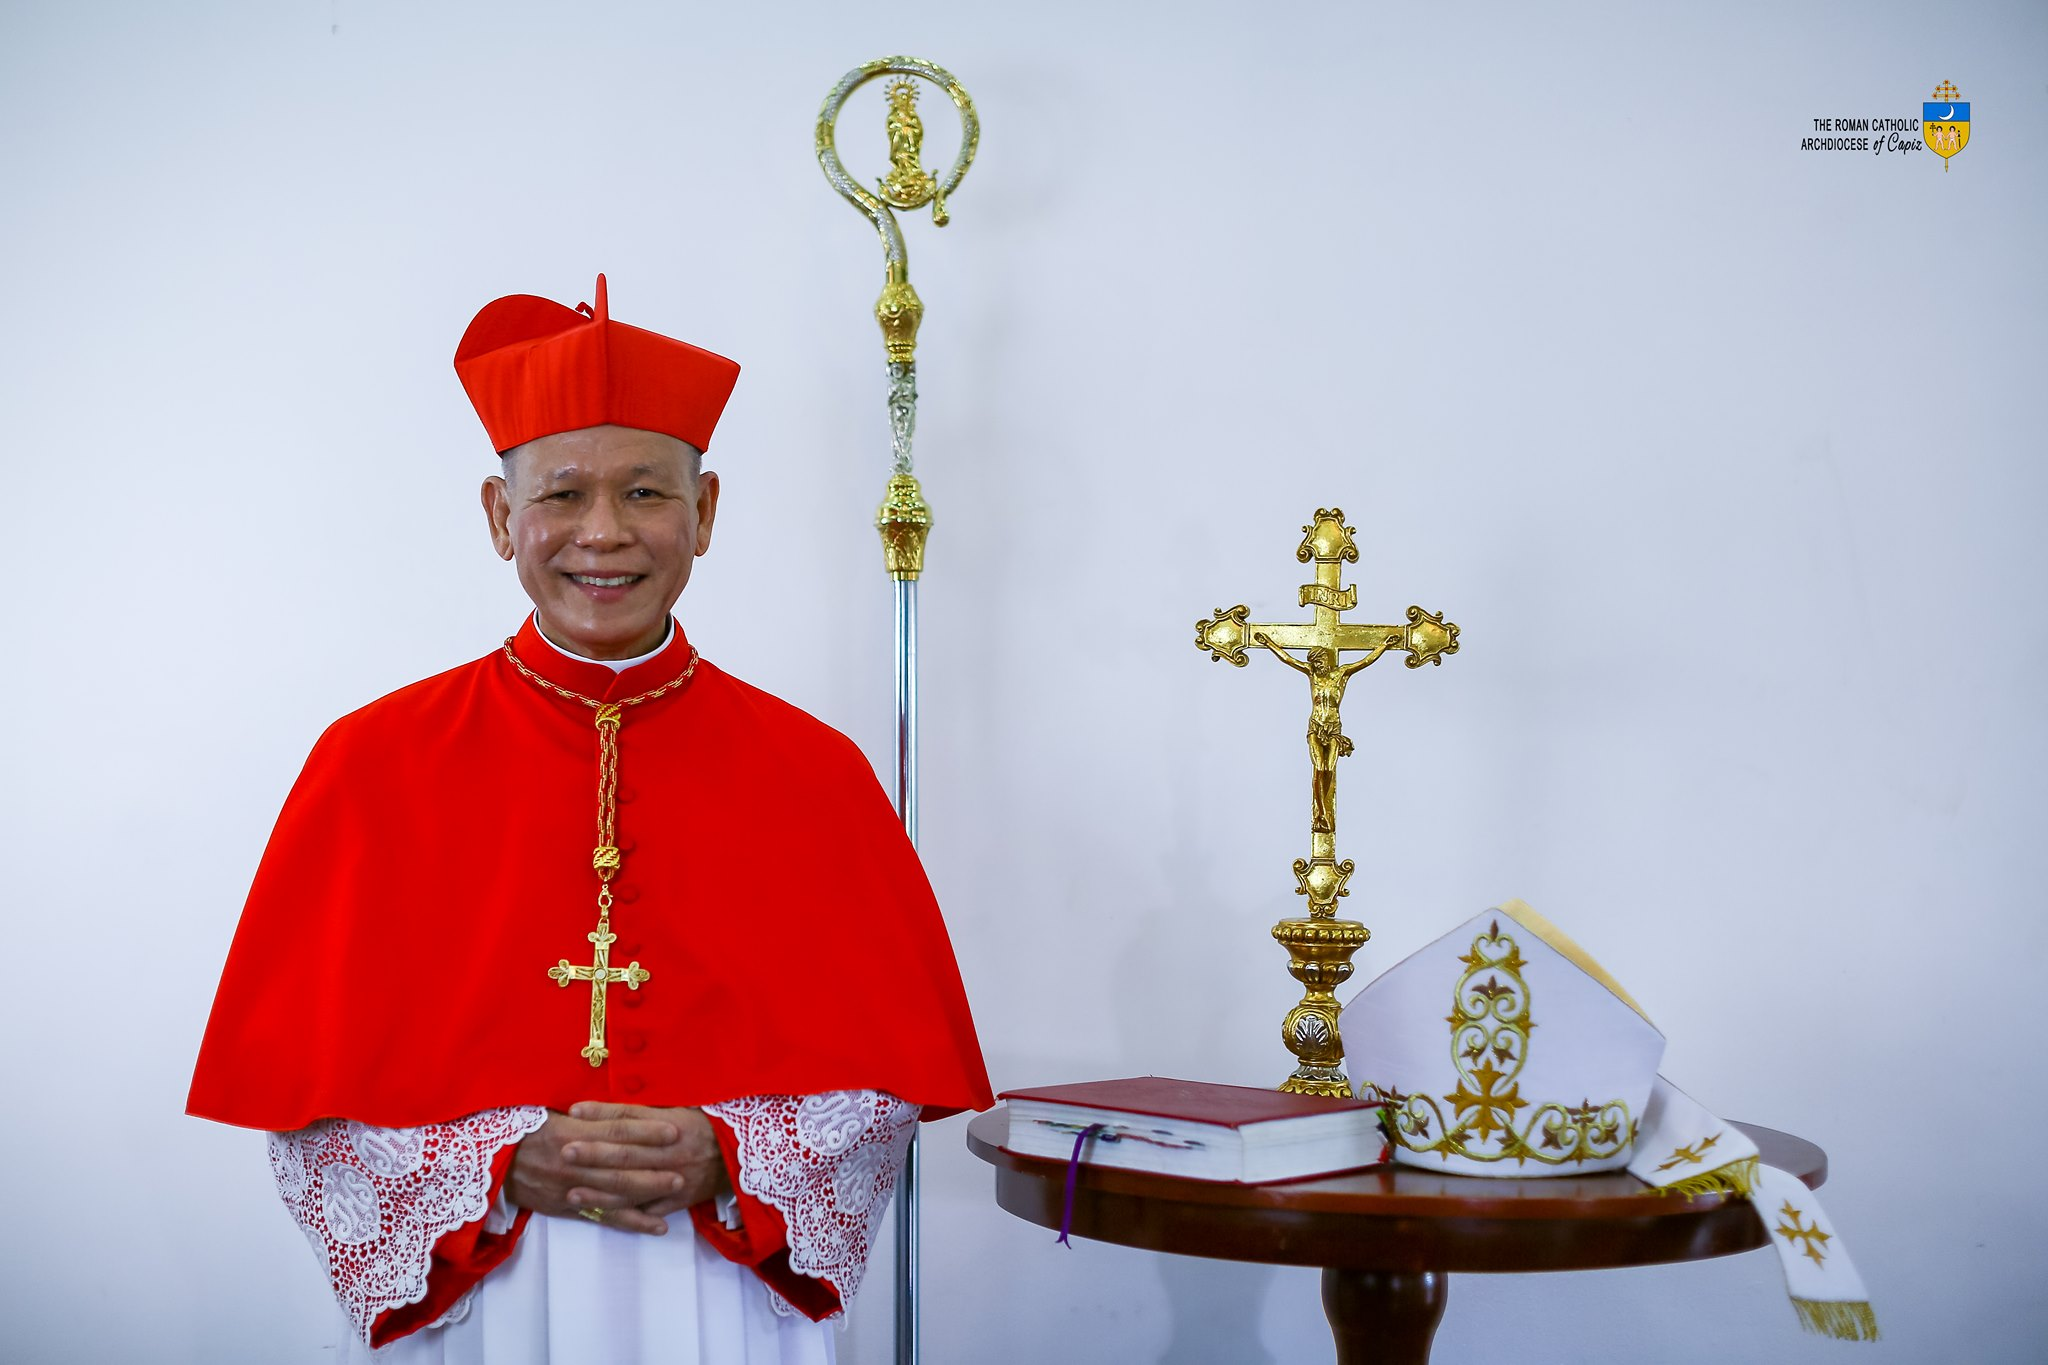 Bestowal of 'Red Hat' of Cardinal Advincula rescheduled on June 18